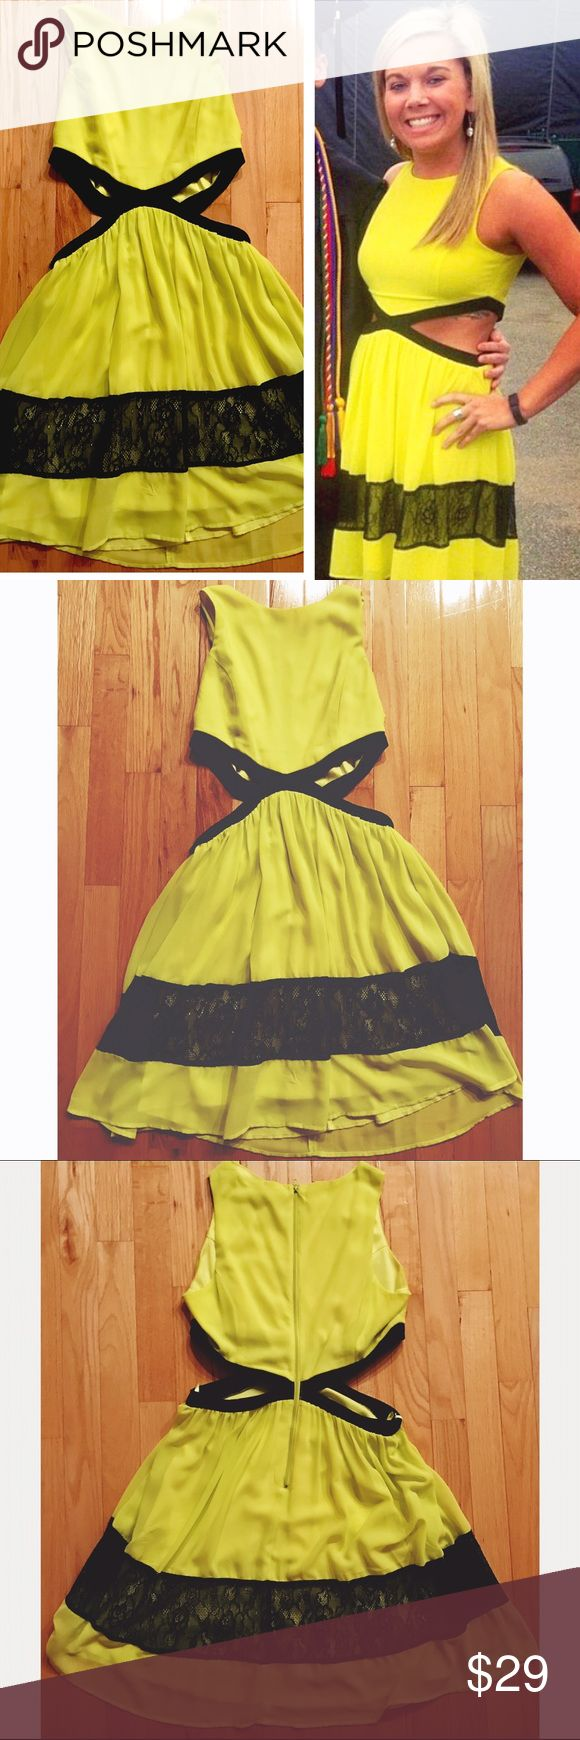 limeblack dress this midi dress is super cute for date night it is